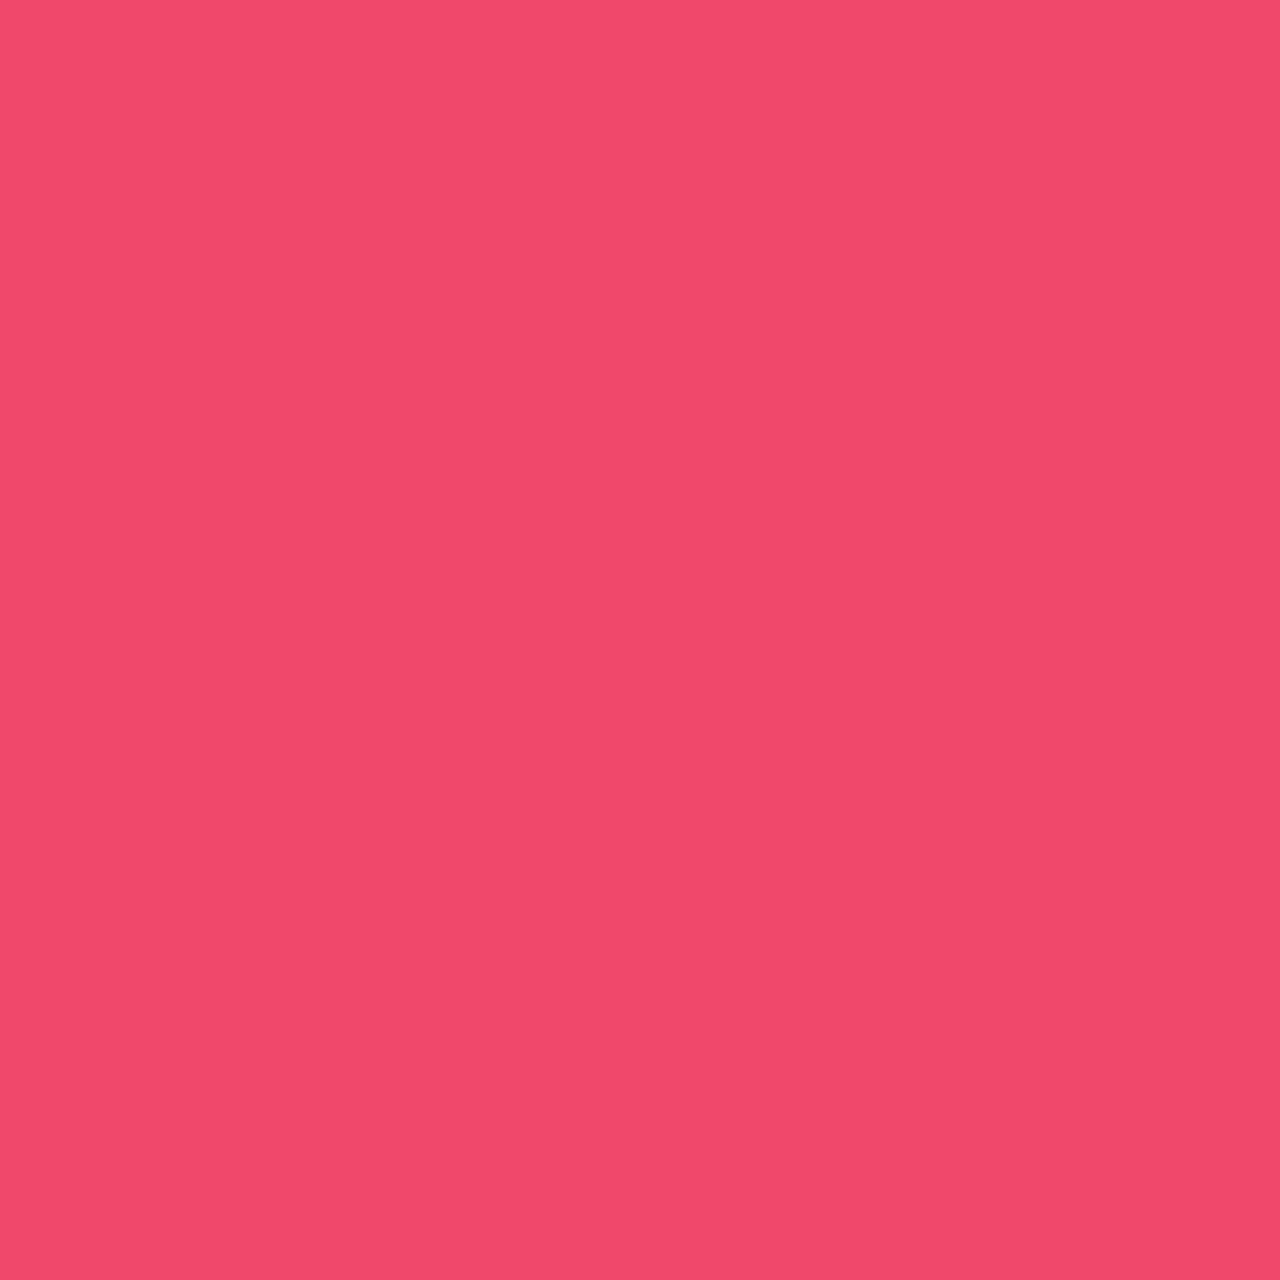 #4890 Rosco Gels Roscolux CalColor 90 Pink, 20x24""